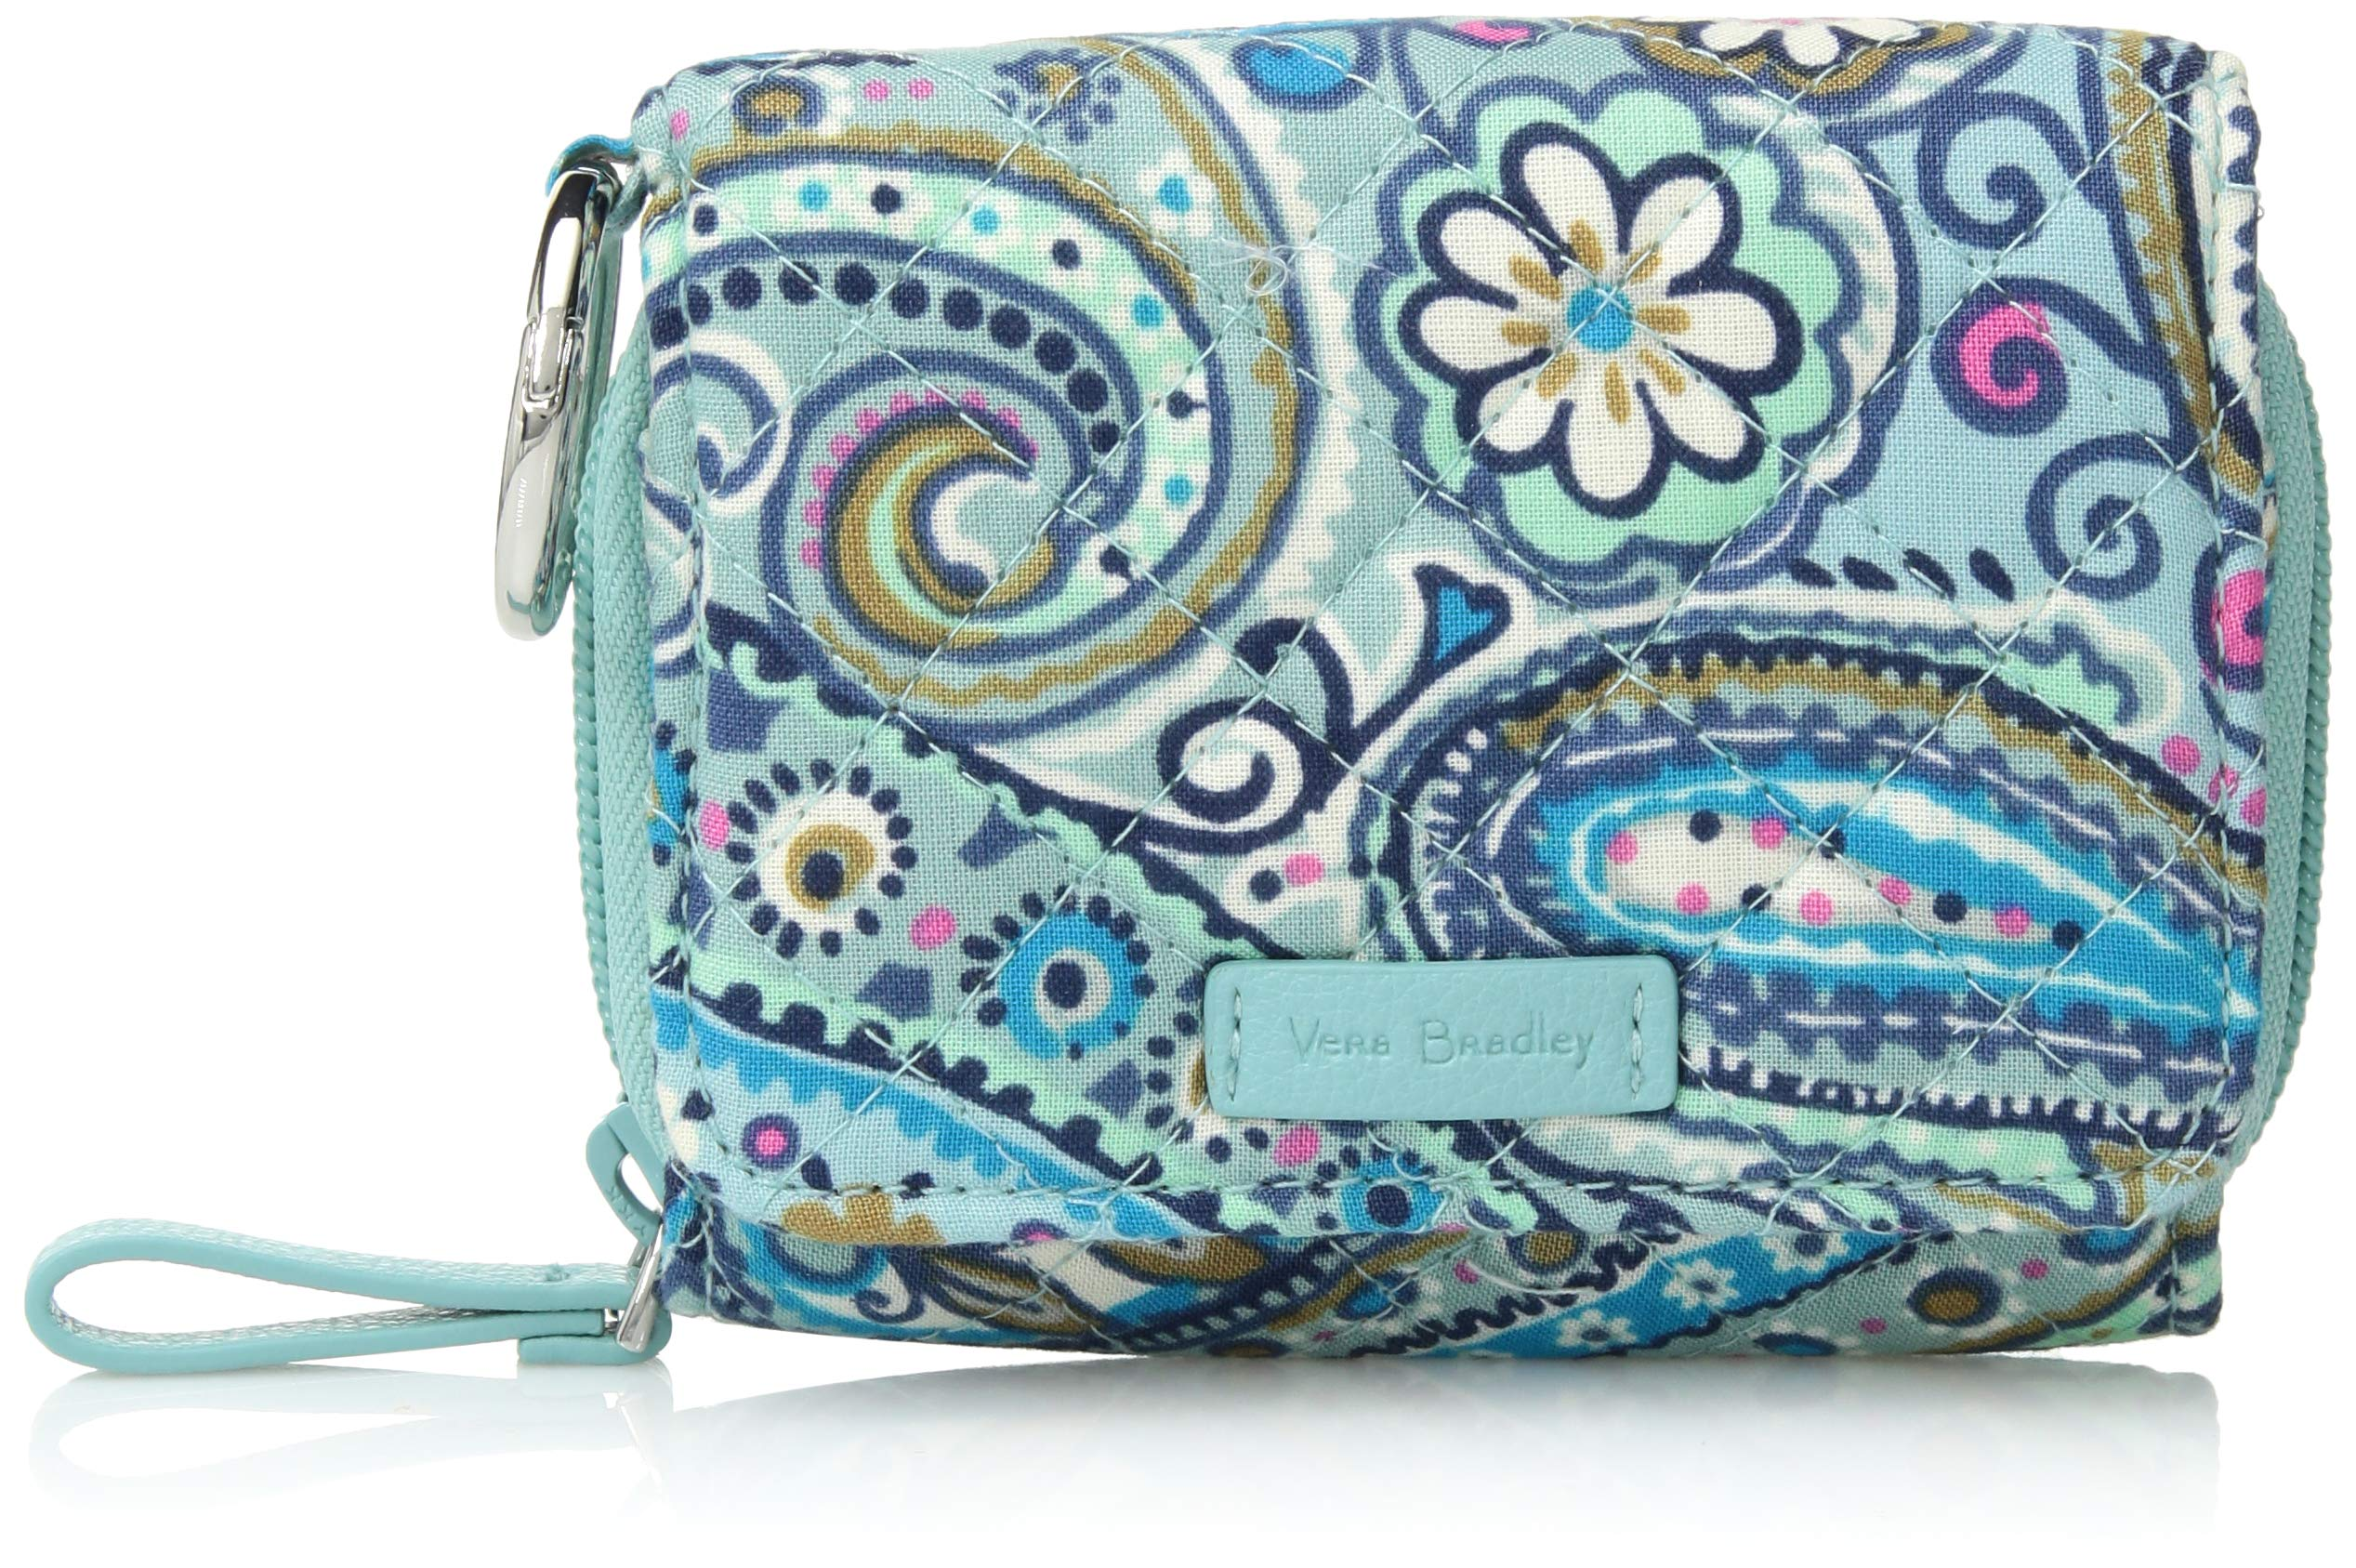 Vera Bradley Iconic RFID Card Case, Signature Cotton, Daisy Dot Paisley